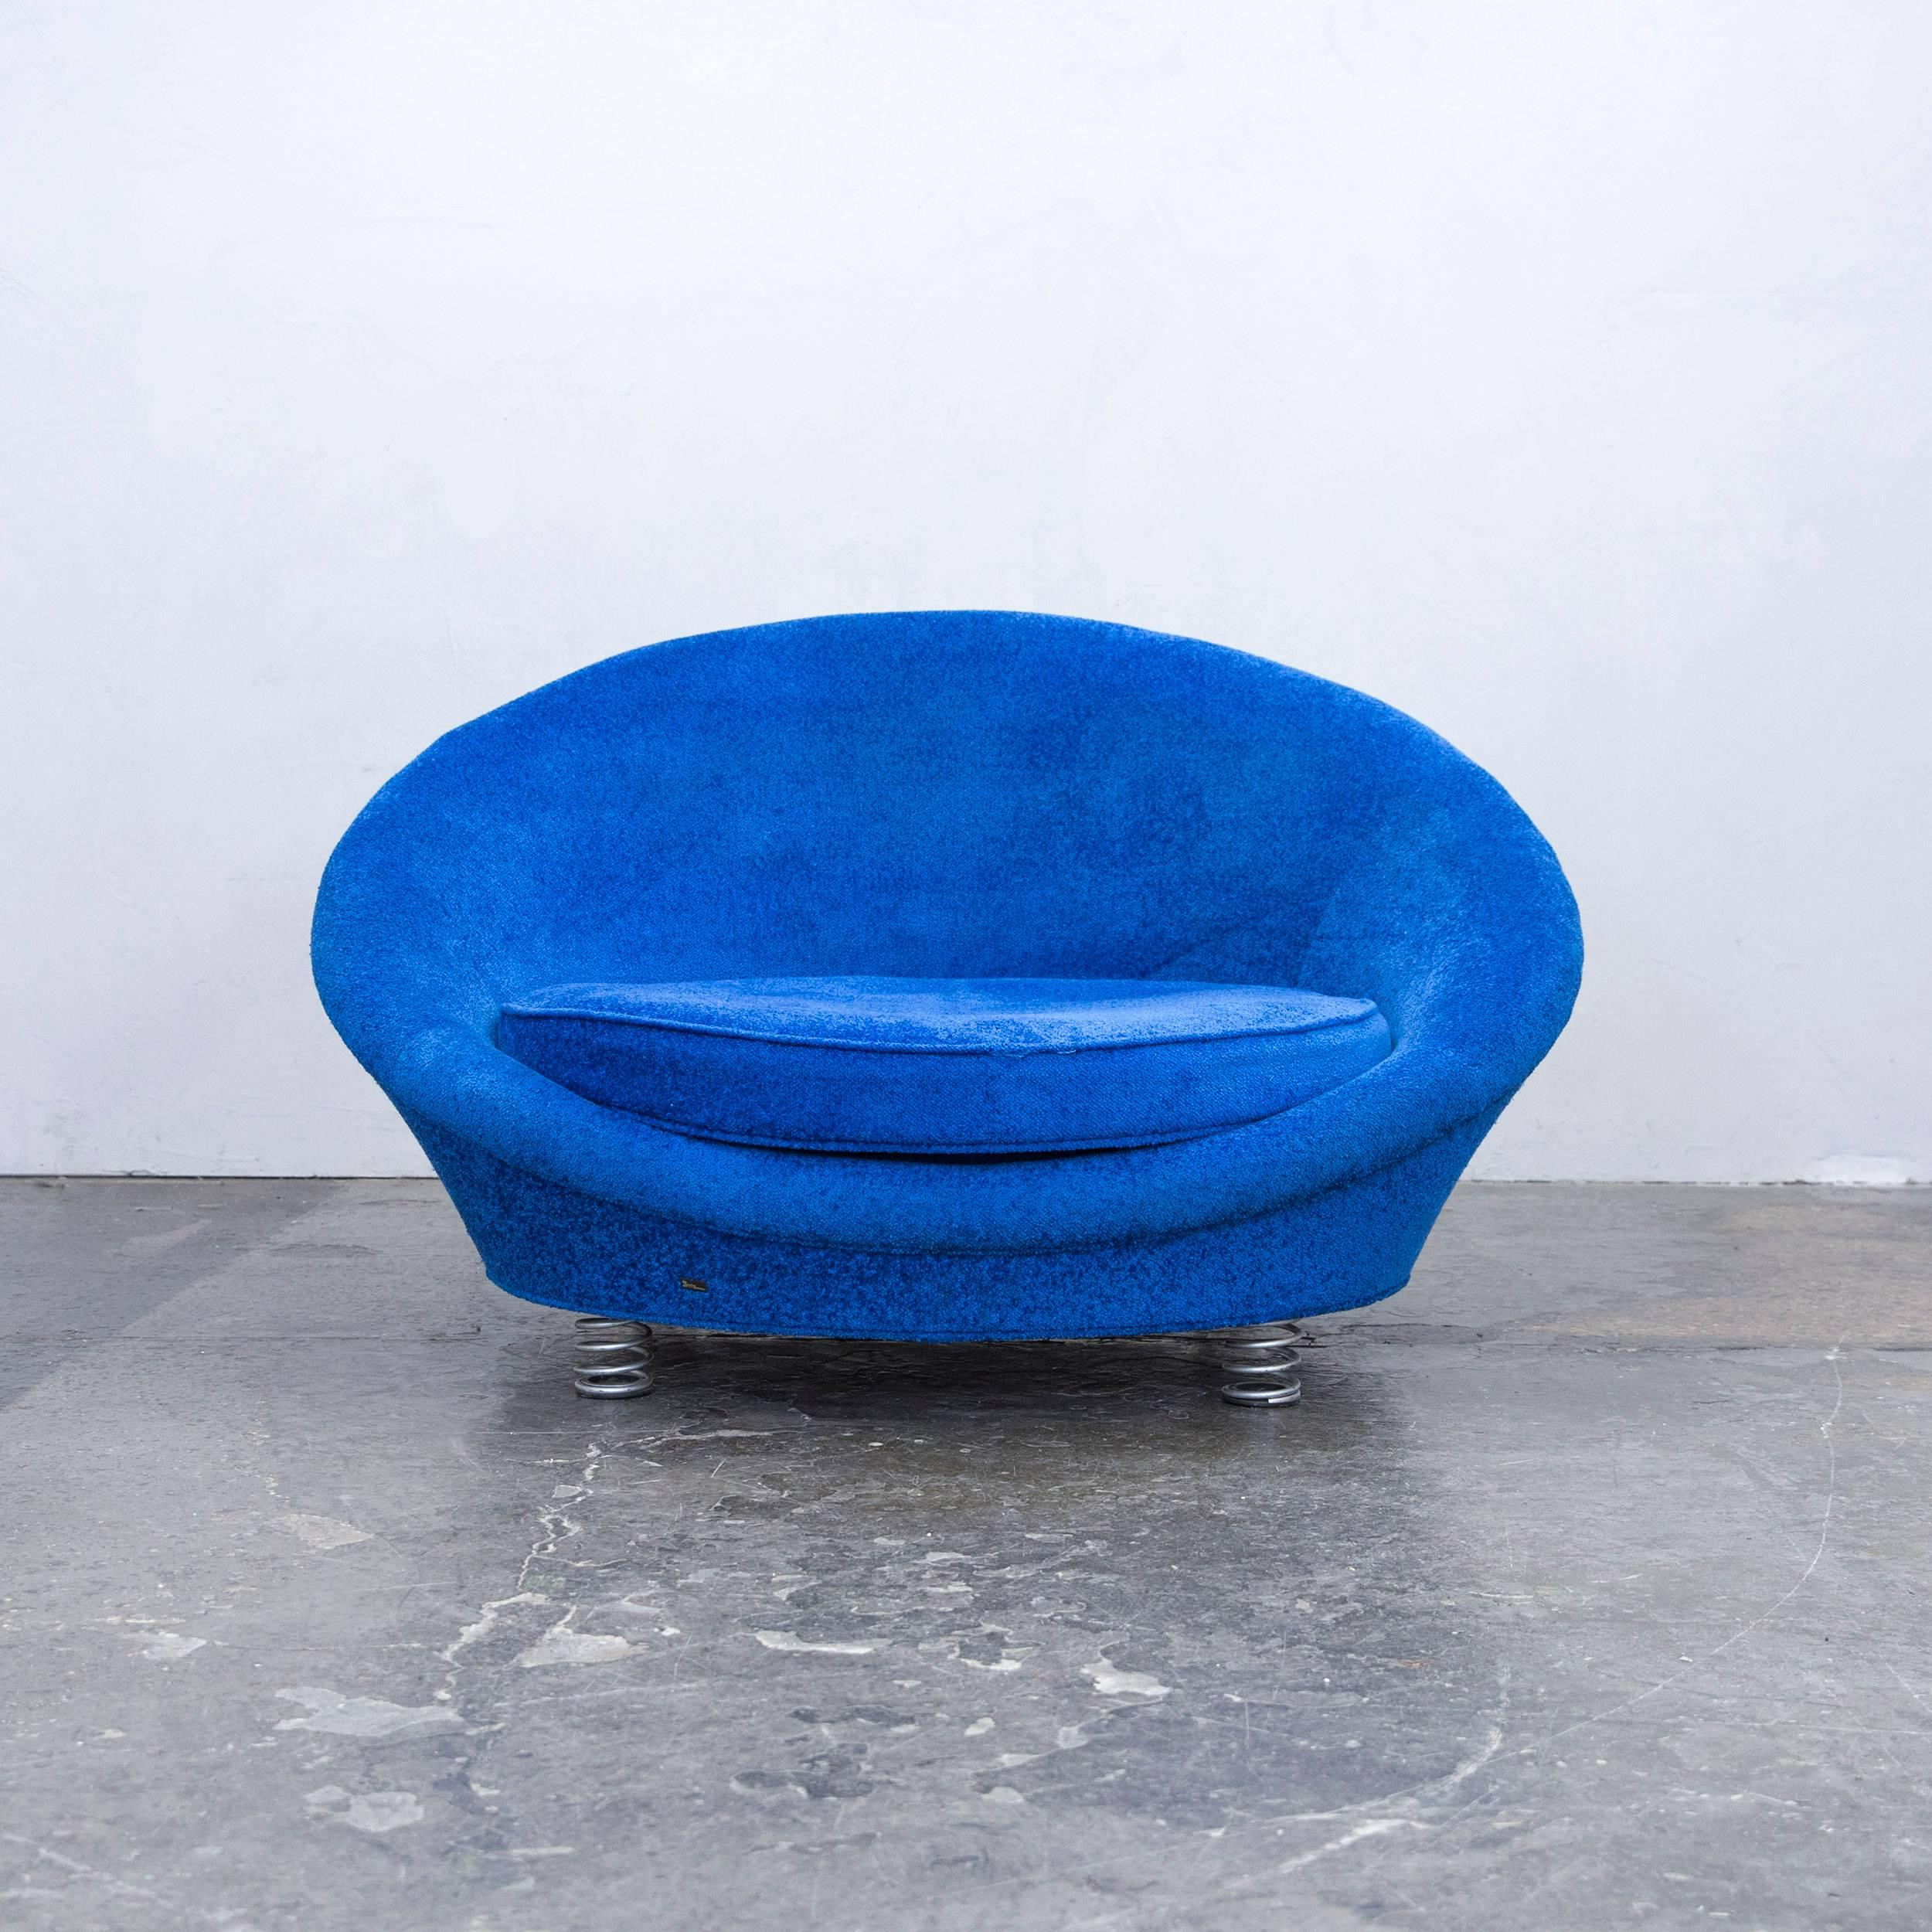 3ca7ffde99b free stunning amazing beautiful blue colored original bretz pool designer  loveseat in a modern design made for pure comfort with loveseat sessel with  ...